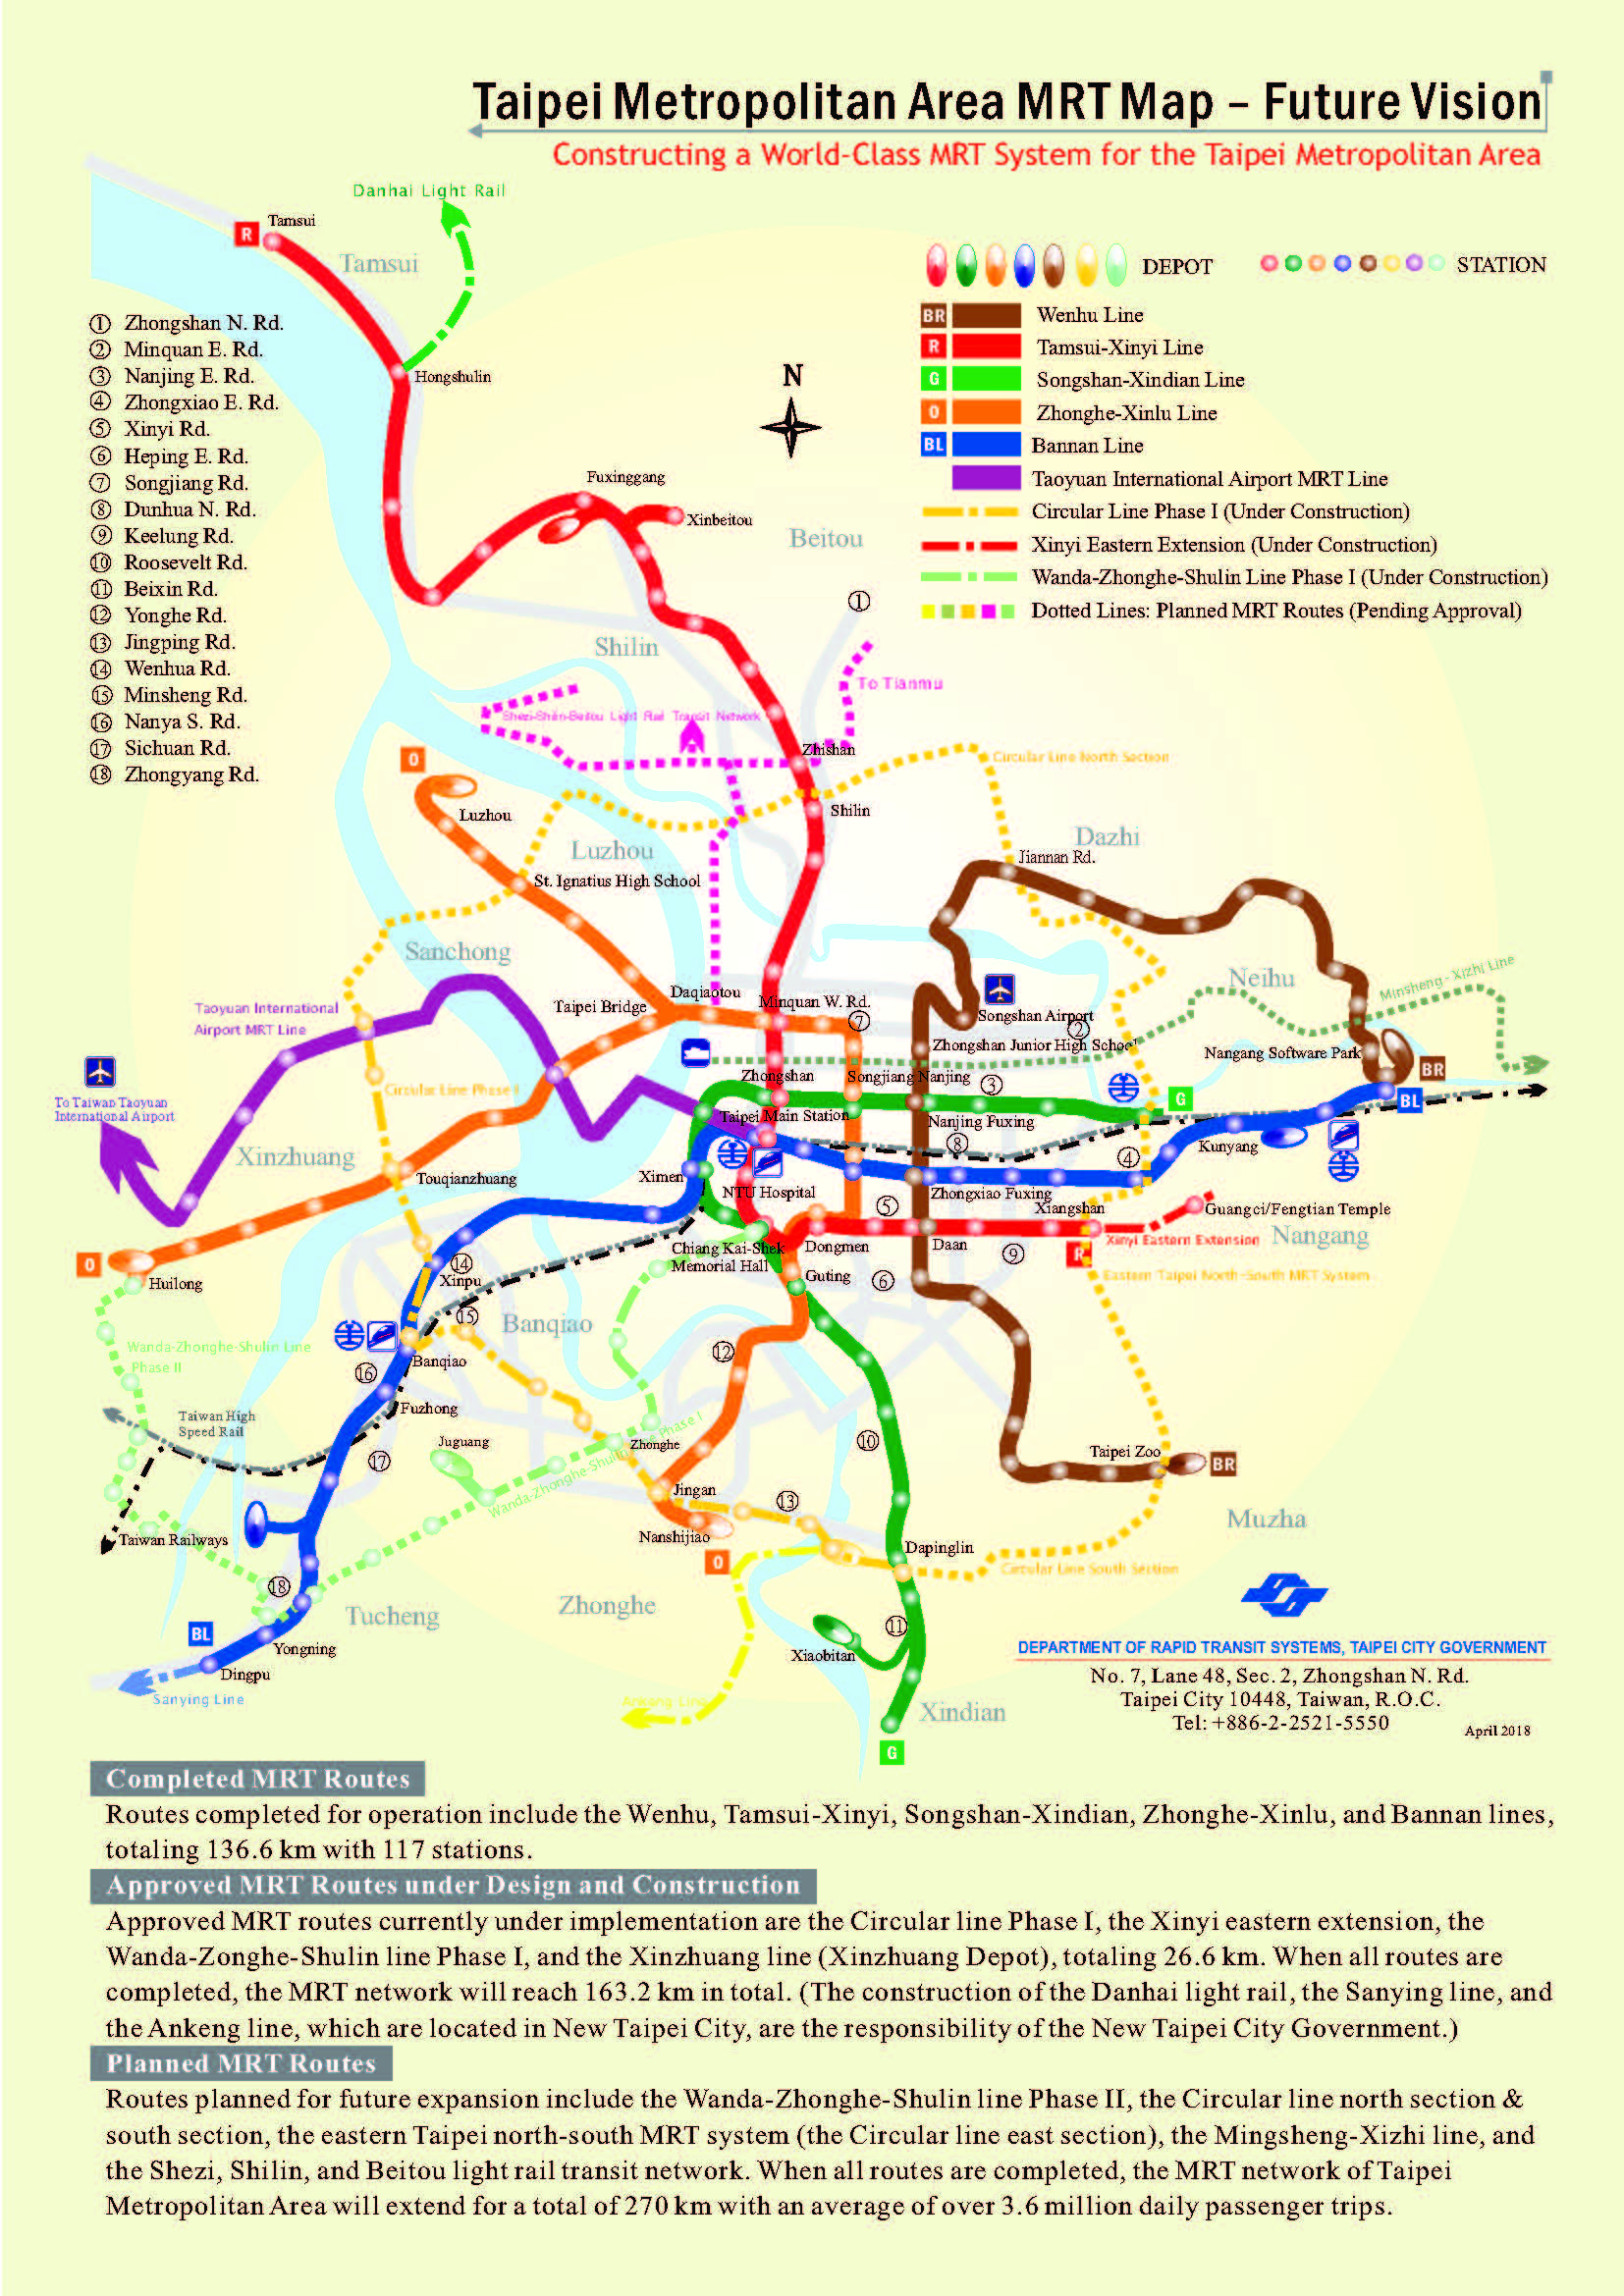 Taipei Metropolitan Area MRT Map – Future Vision, jpg download, opened with new window.